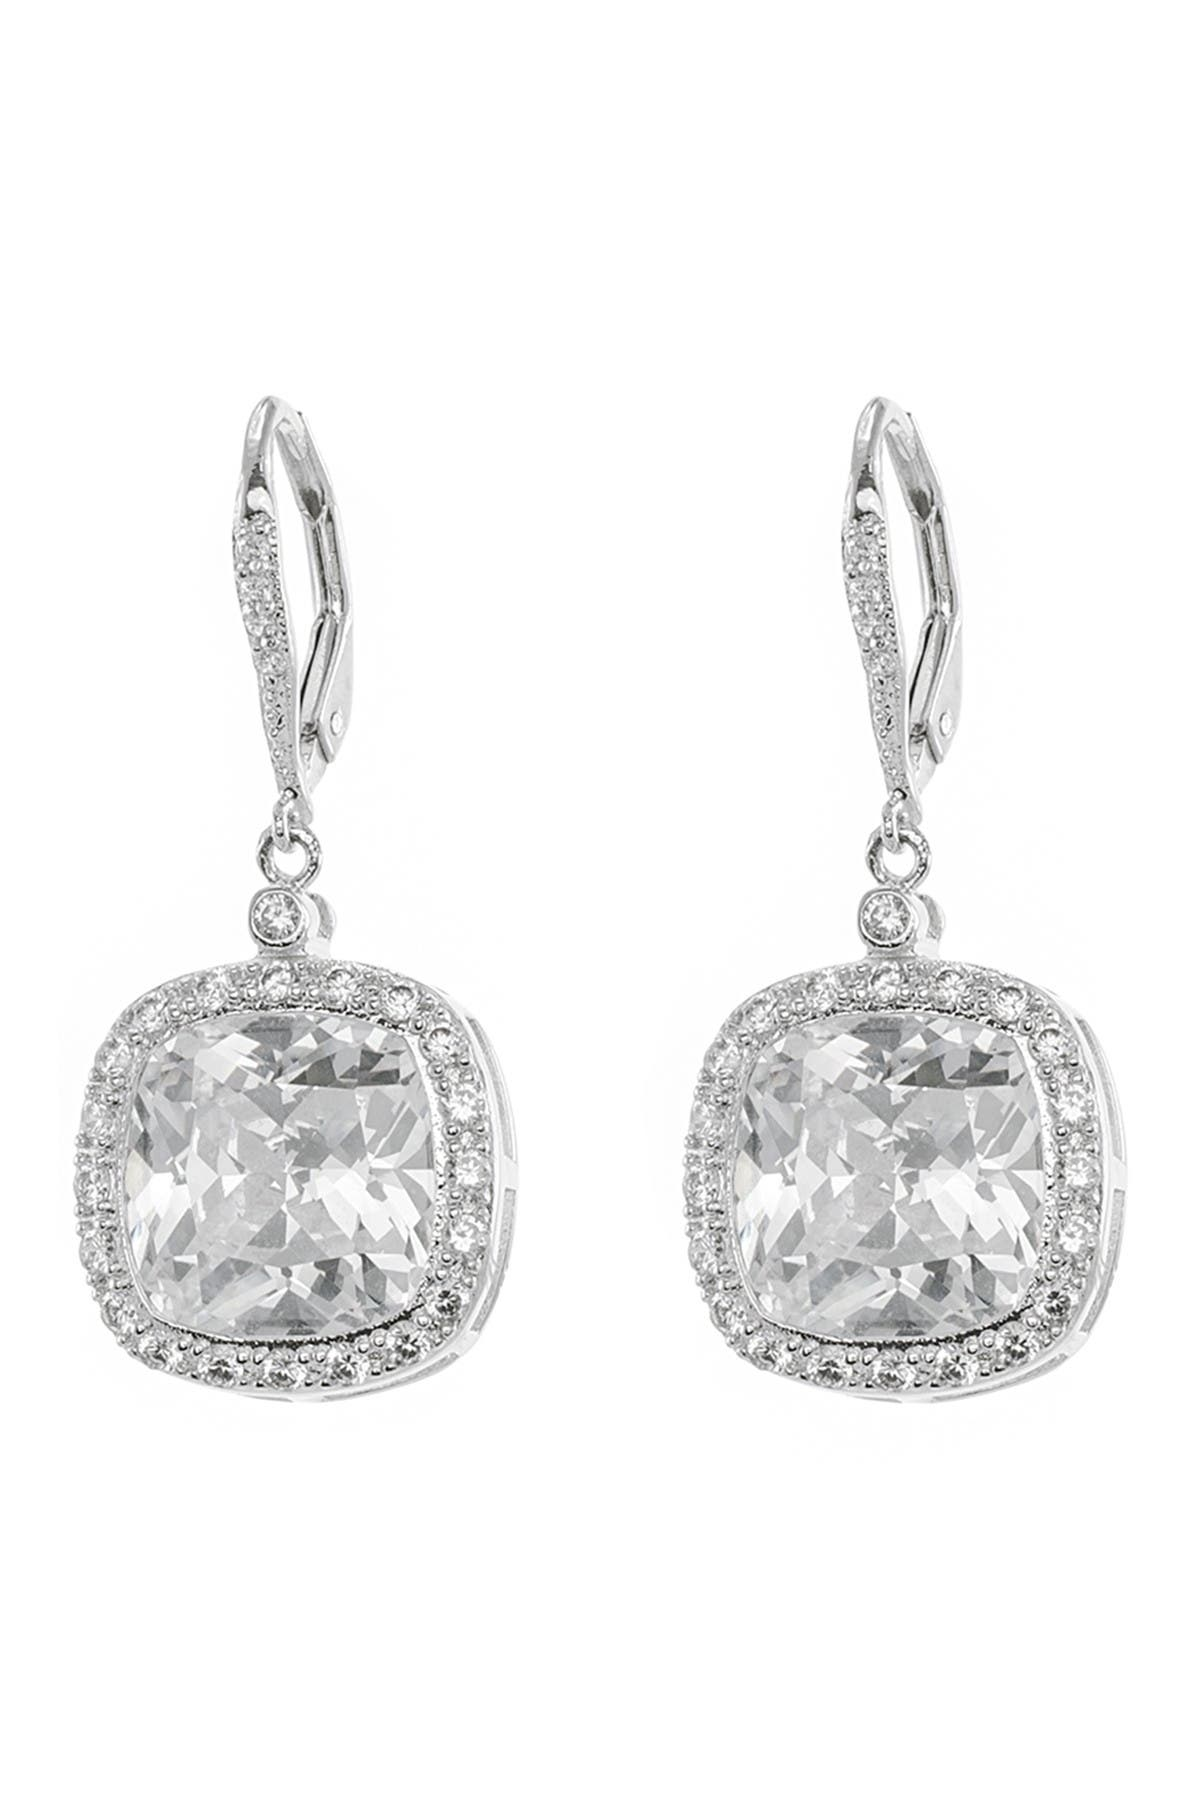 Image of CZ By Kenneth Jay Lane CZ Pave Border Earrings